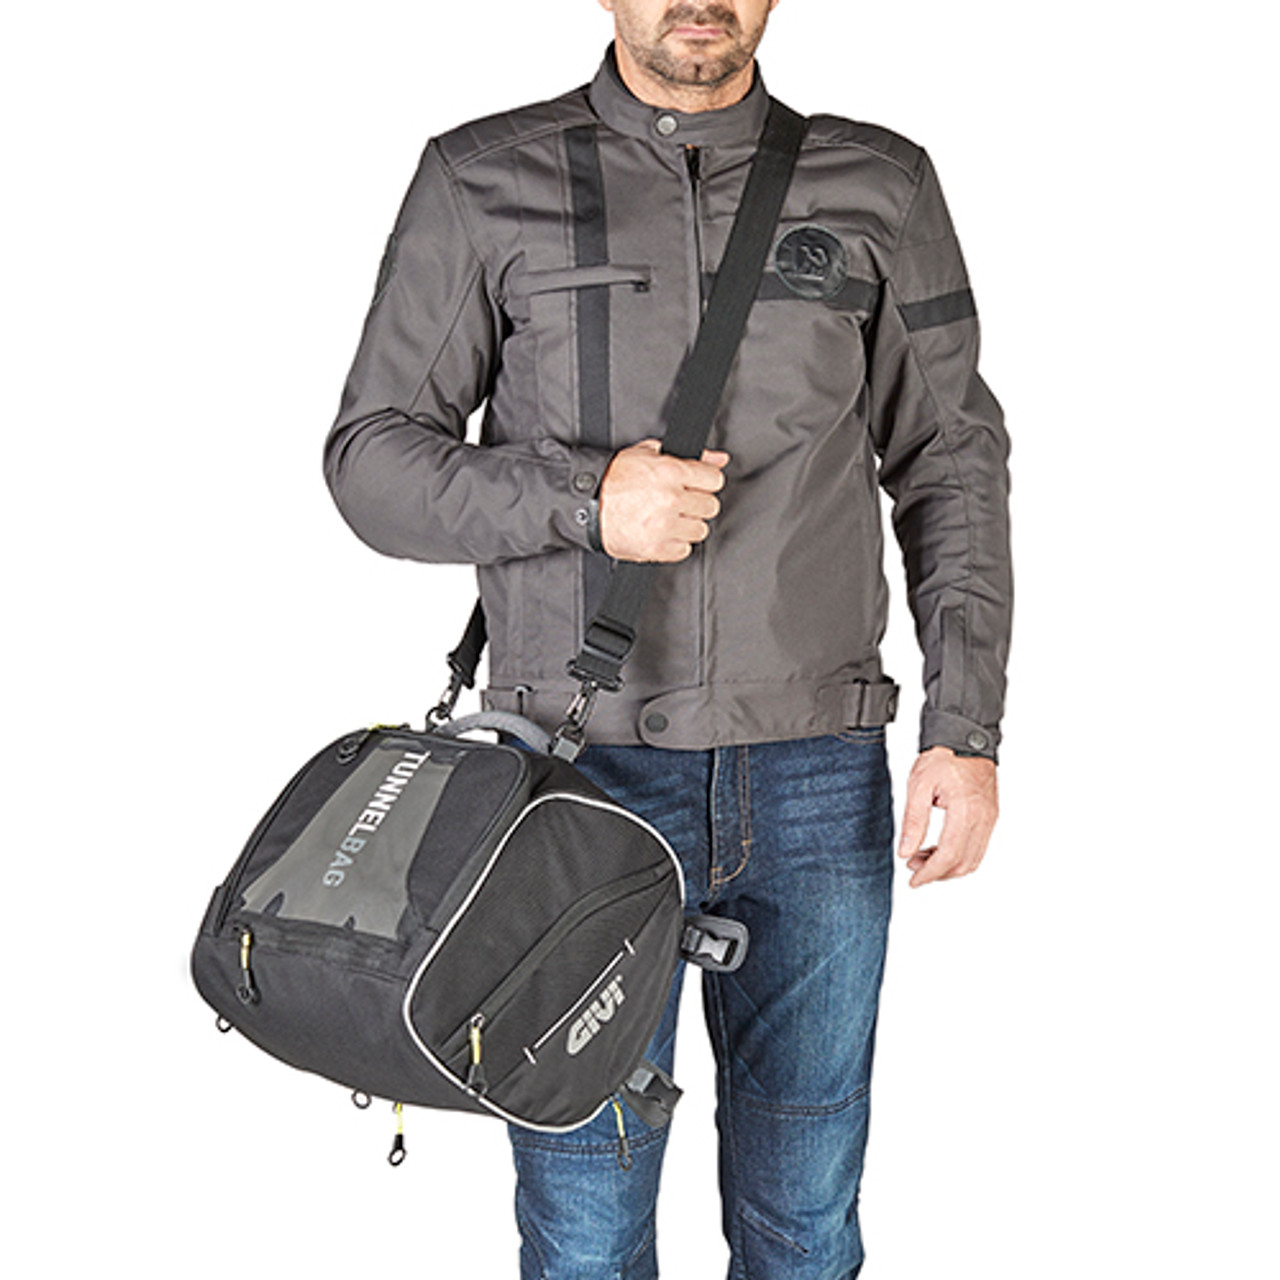 Givi EA122 Seat/Tunnel Motorcycle Bag 23 Litre , Black, Fitting Straps and Rain Cover Included